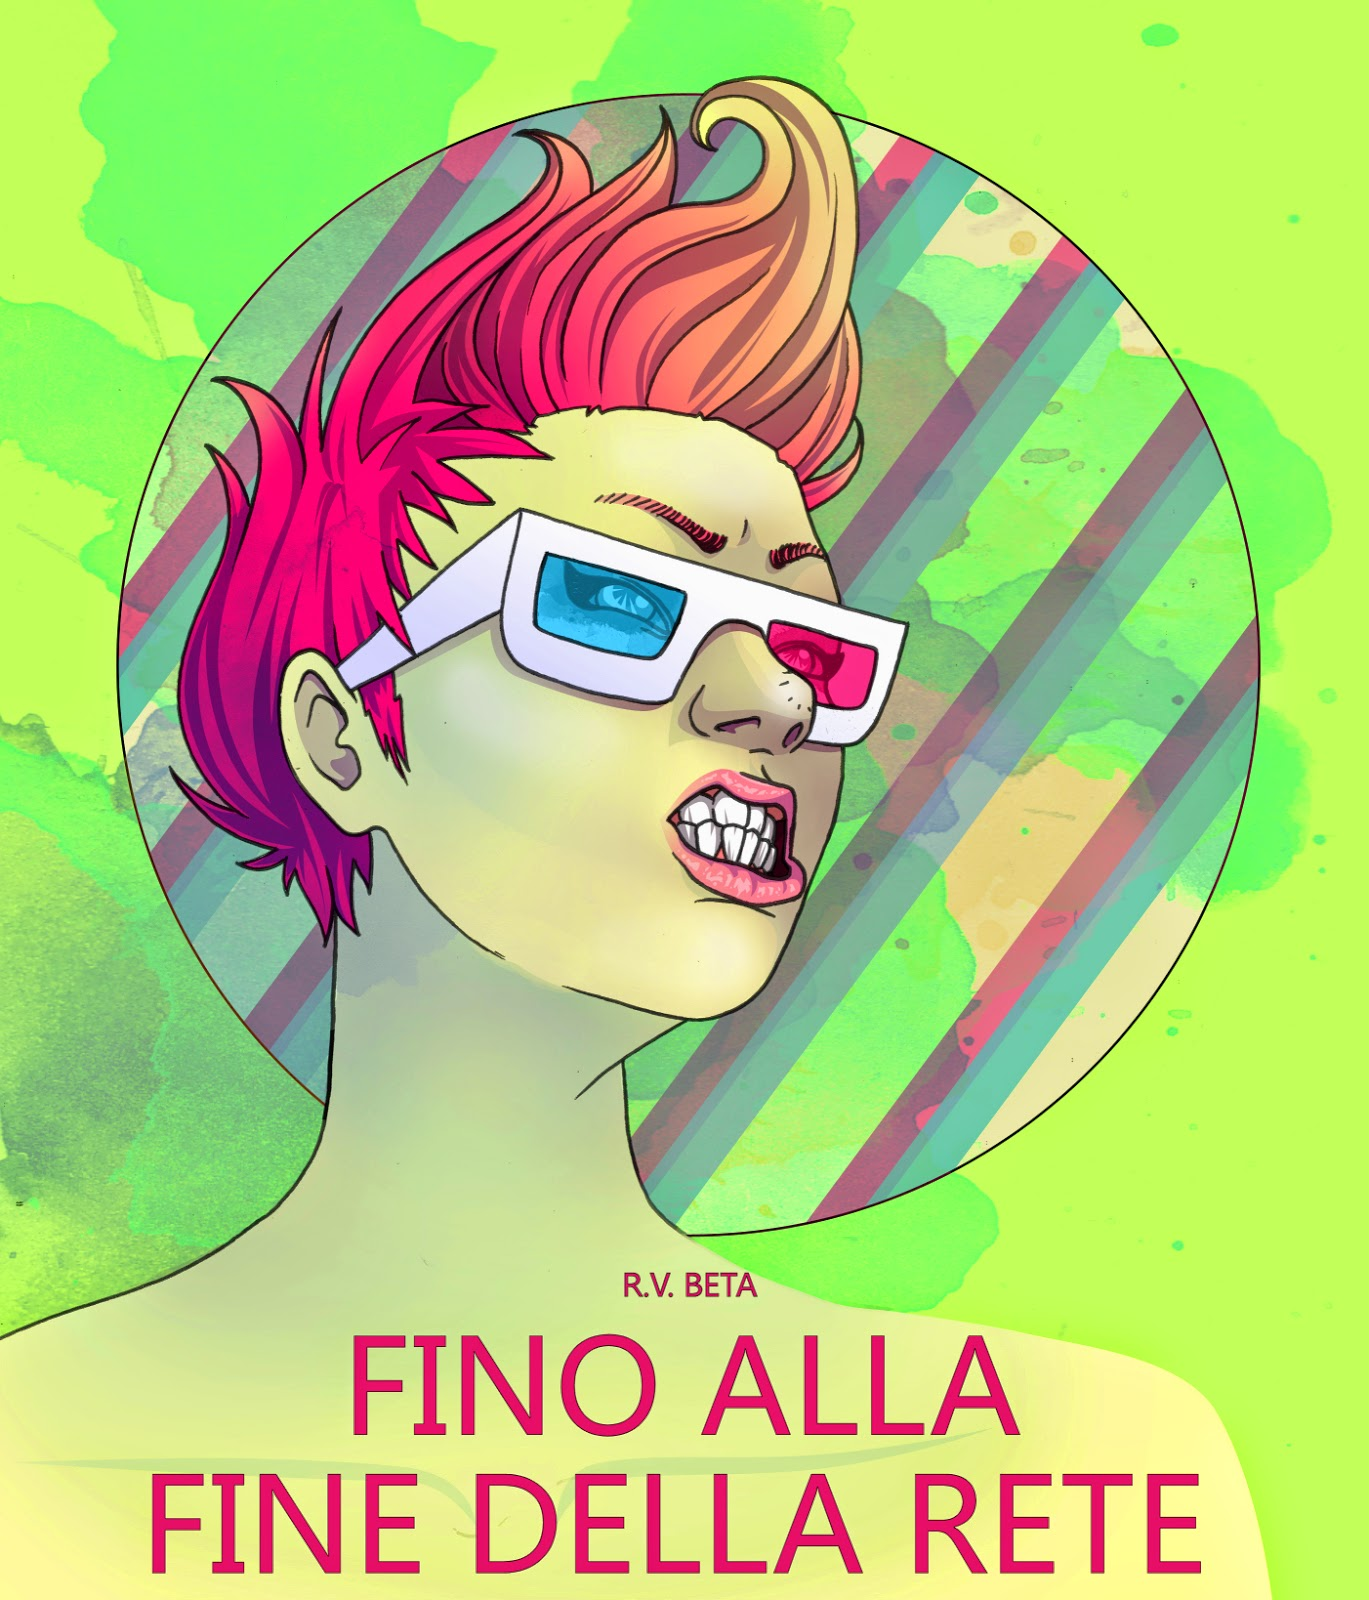 http://www.amazon.it/Fino-alla-fine-della-rete-ebook/dp/B00GYI8ZM2/